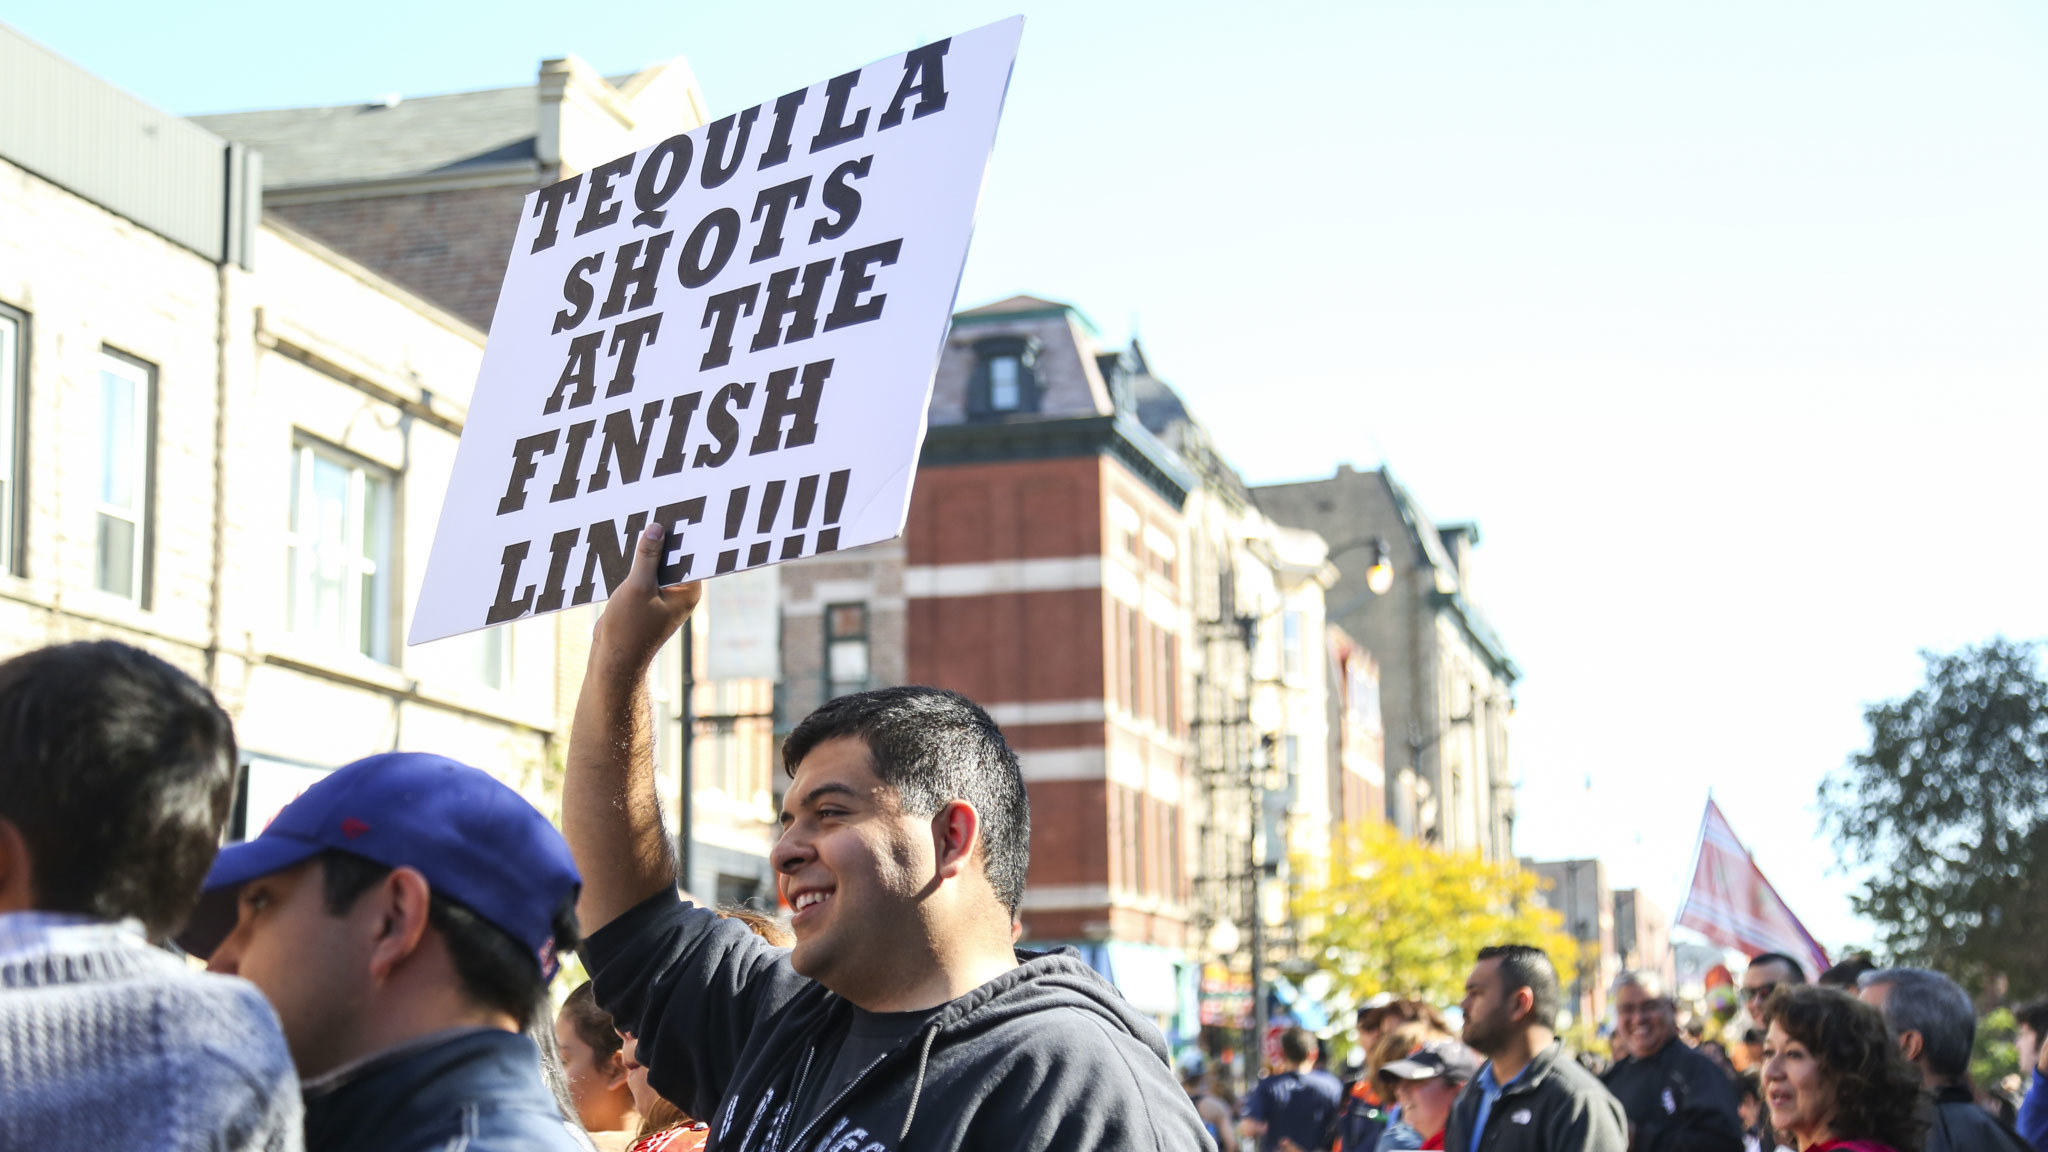 Chicago Marathon 2015 funniest spectator signs